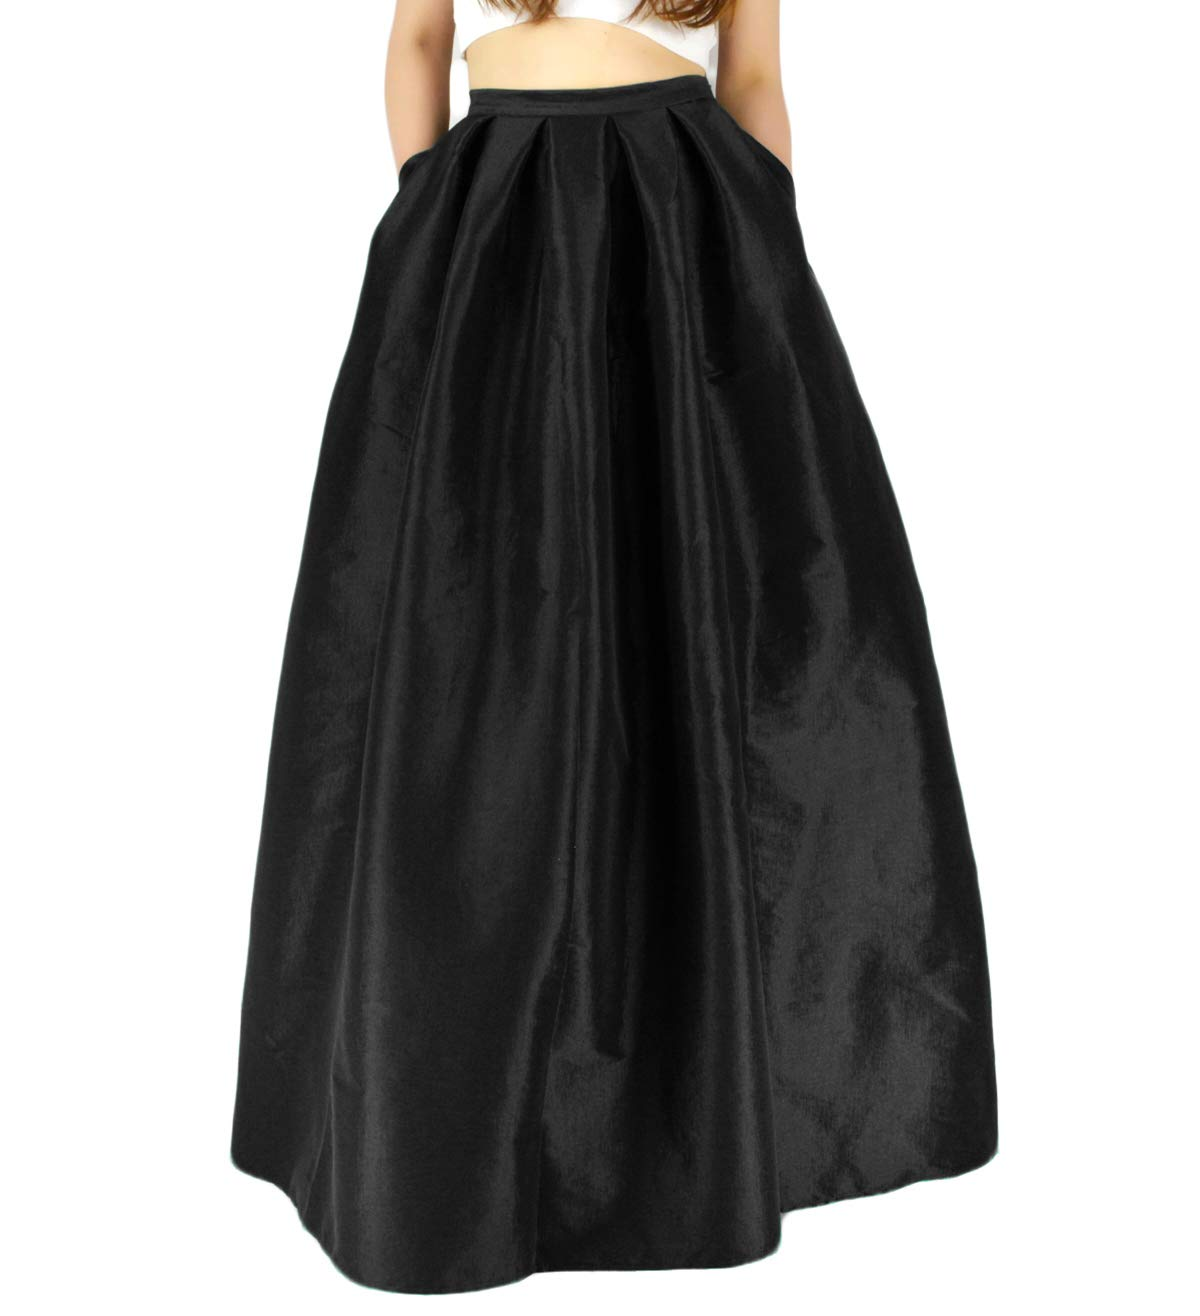 YSJERA Women's High Waist A-Line Pleated Maxi Skirts Party Swing Skirt with Pockets (14, Black Len 43.3'')